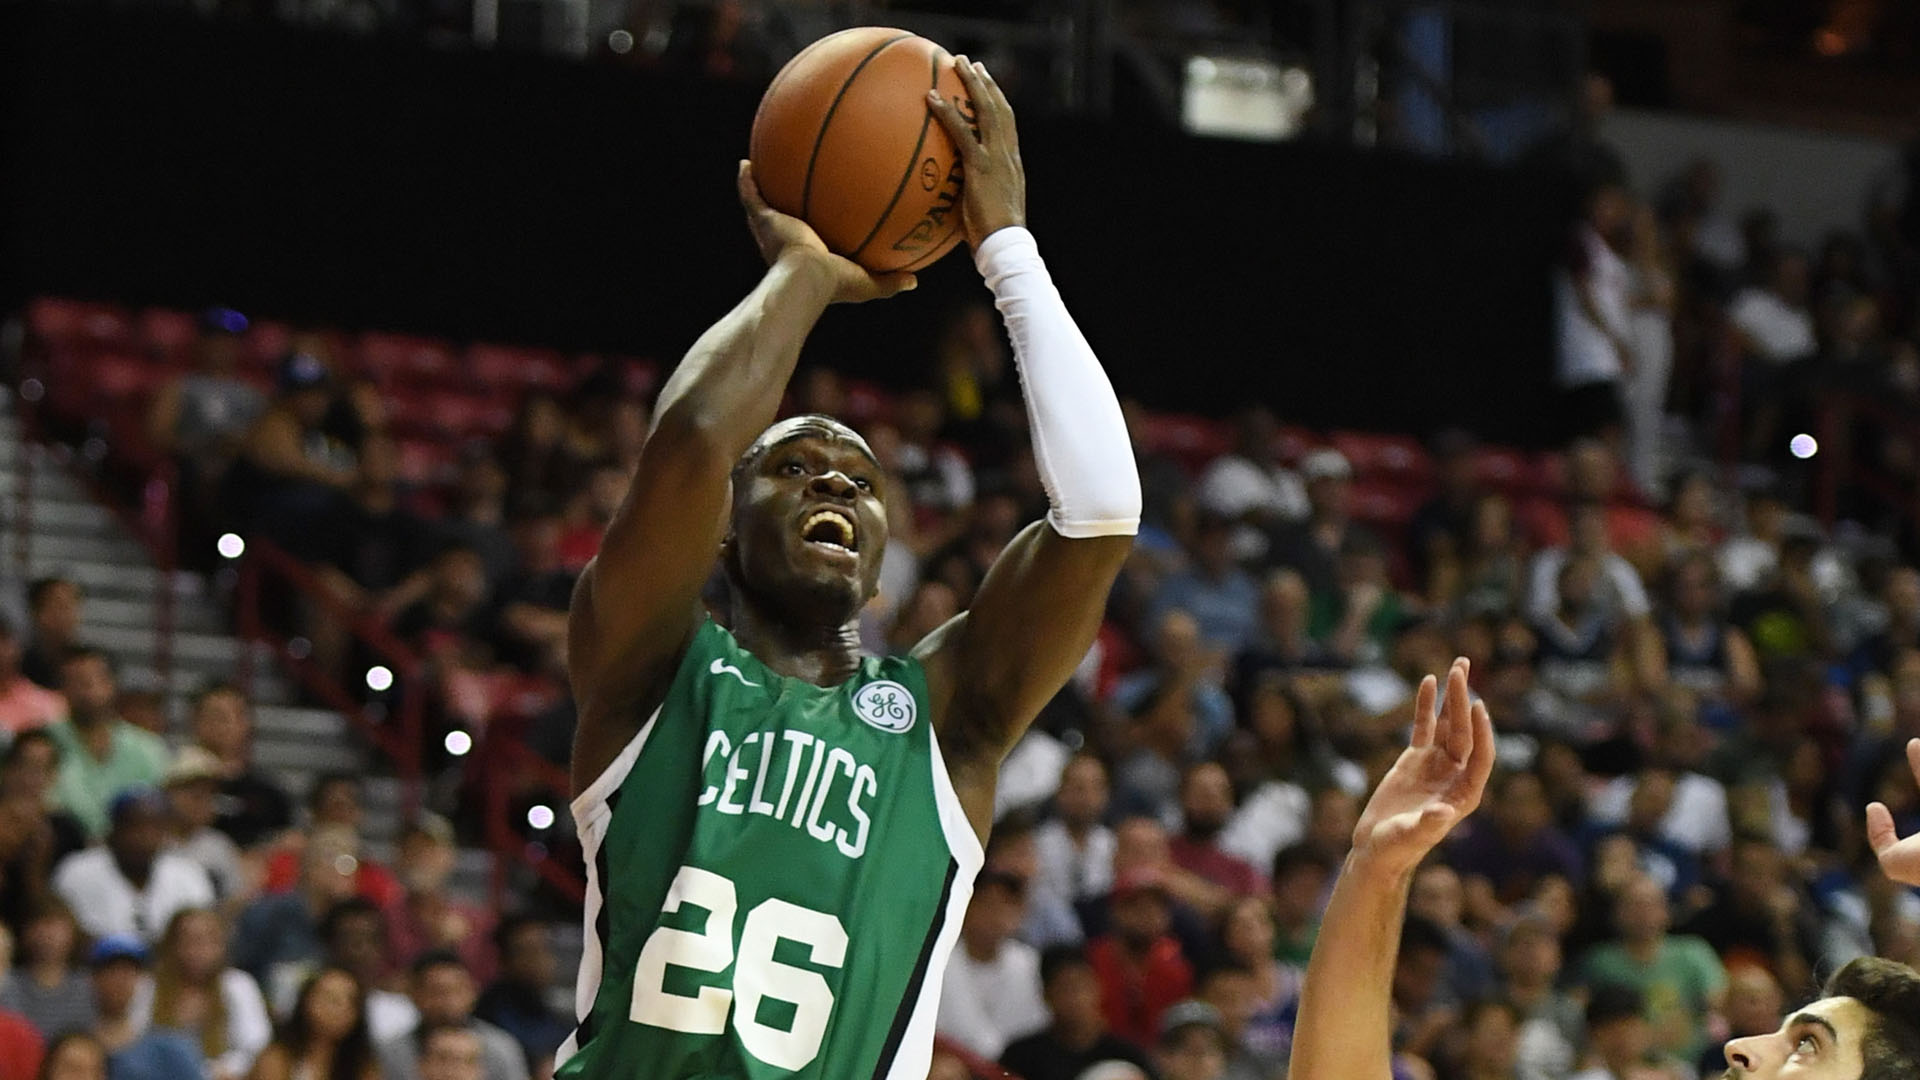 Celtics trade Jabari Bird, open roster spot for buyout market